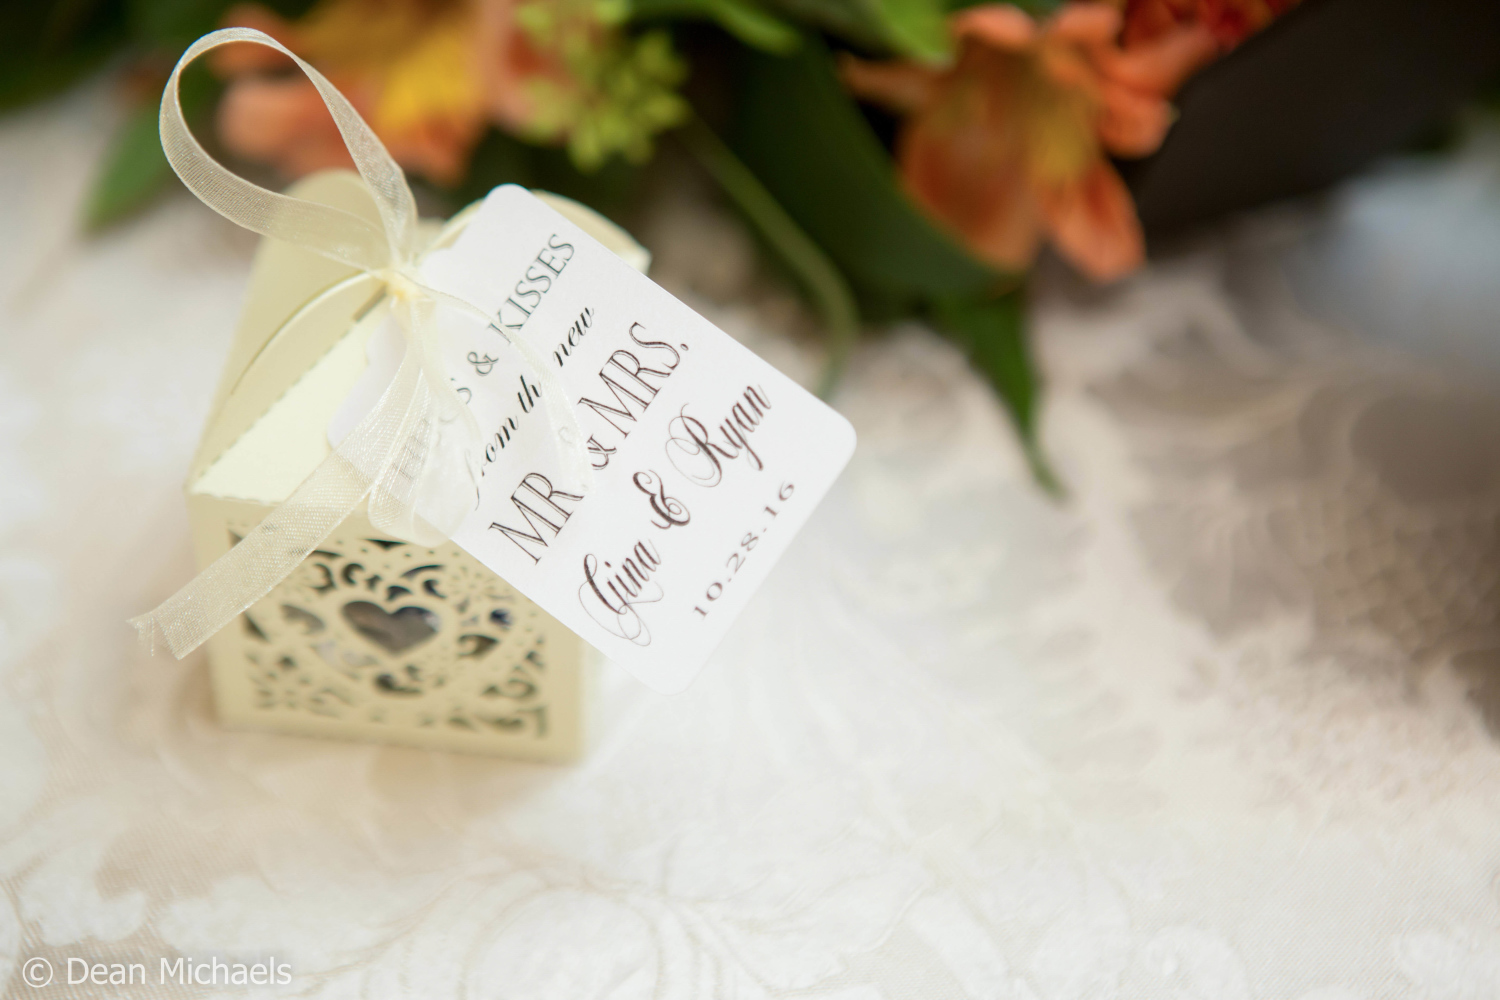 wedding-photographer-gallery-2-F6KH7P8RP96P.jpg